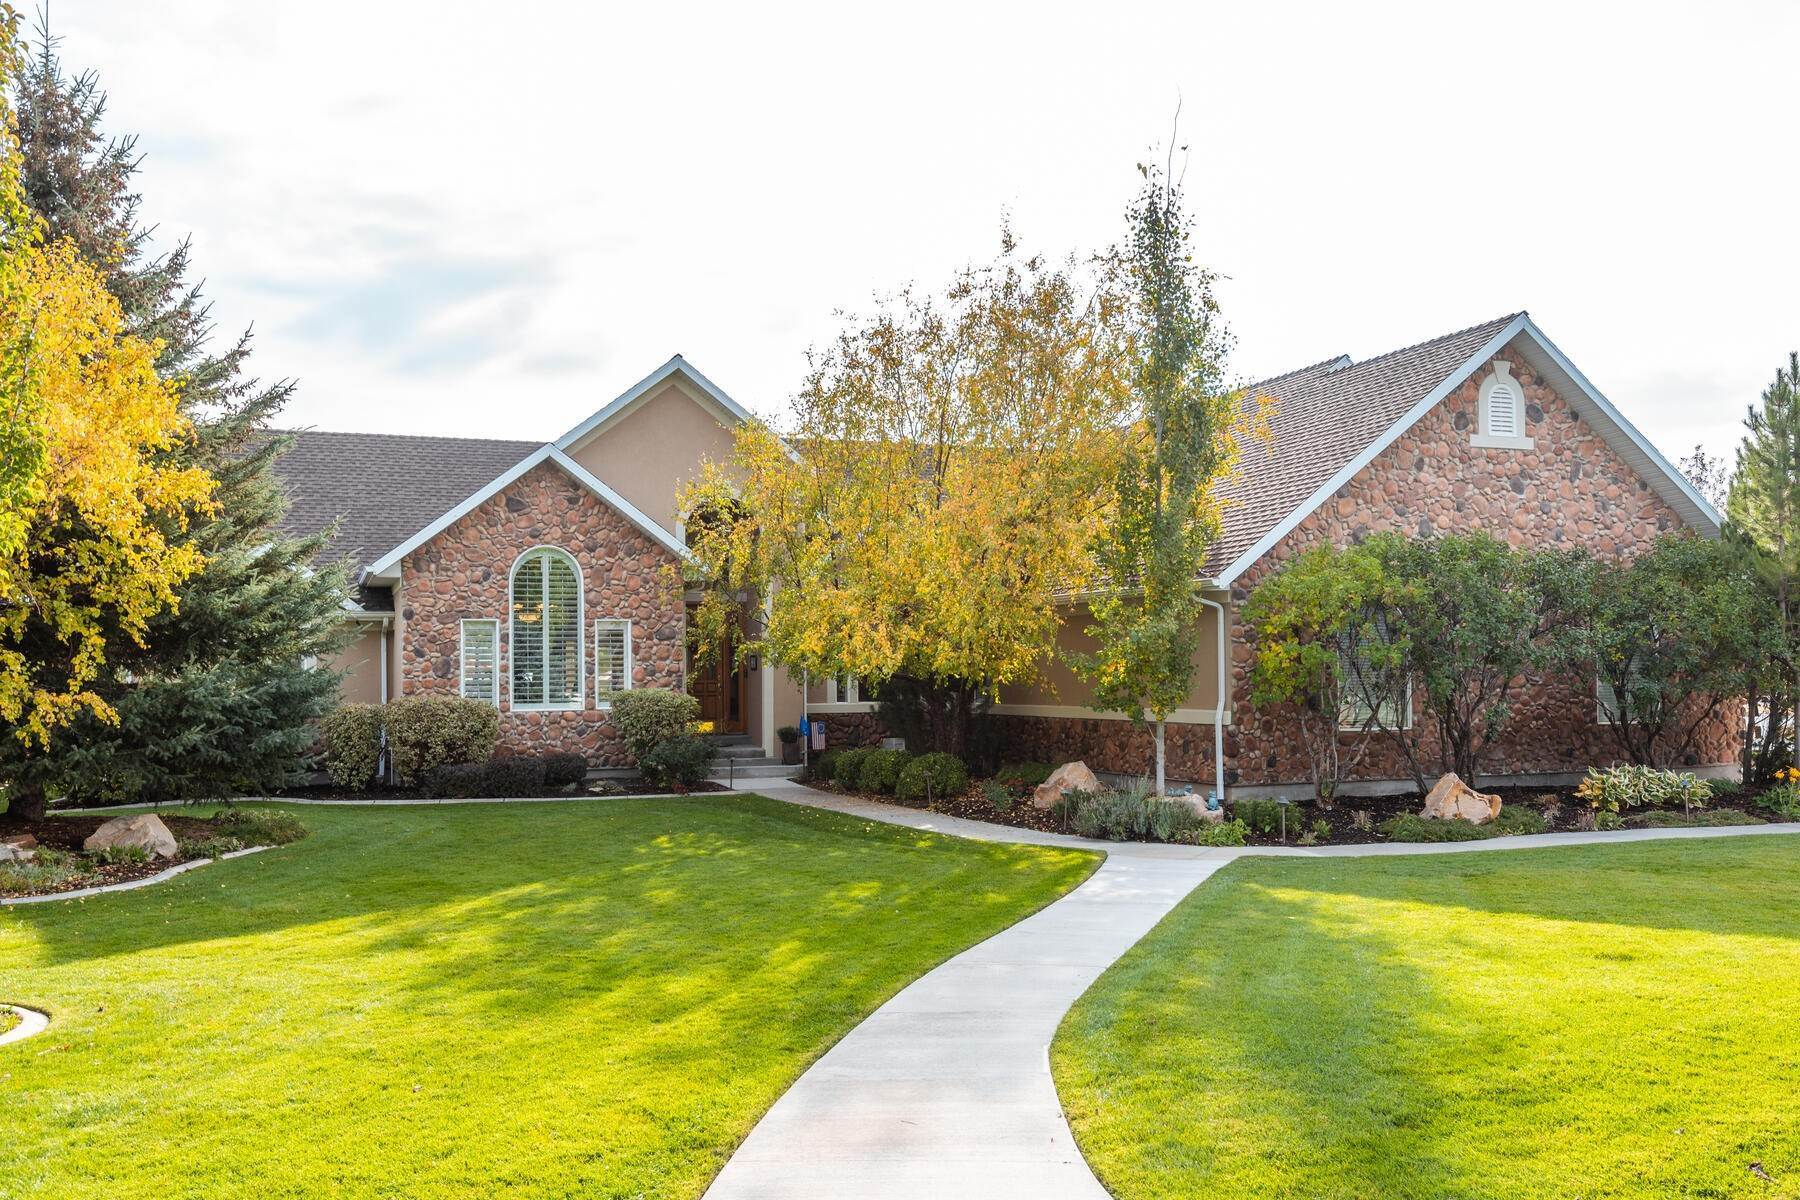 Property for Sale at Exciting 5,000 Sq Ft Home on 1/2 Acre in Midway at Lacy Lane 900 N 440 E Martha Lane Midway, Utah 84049 United States